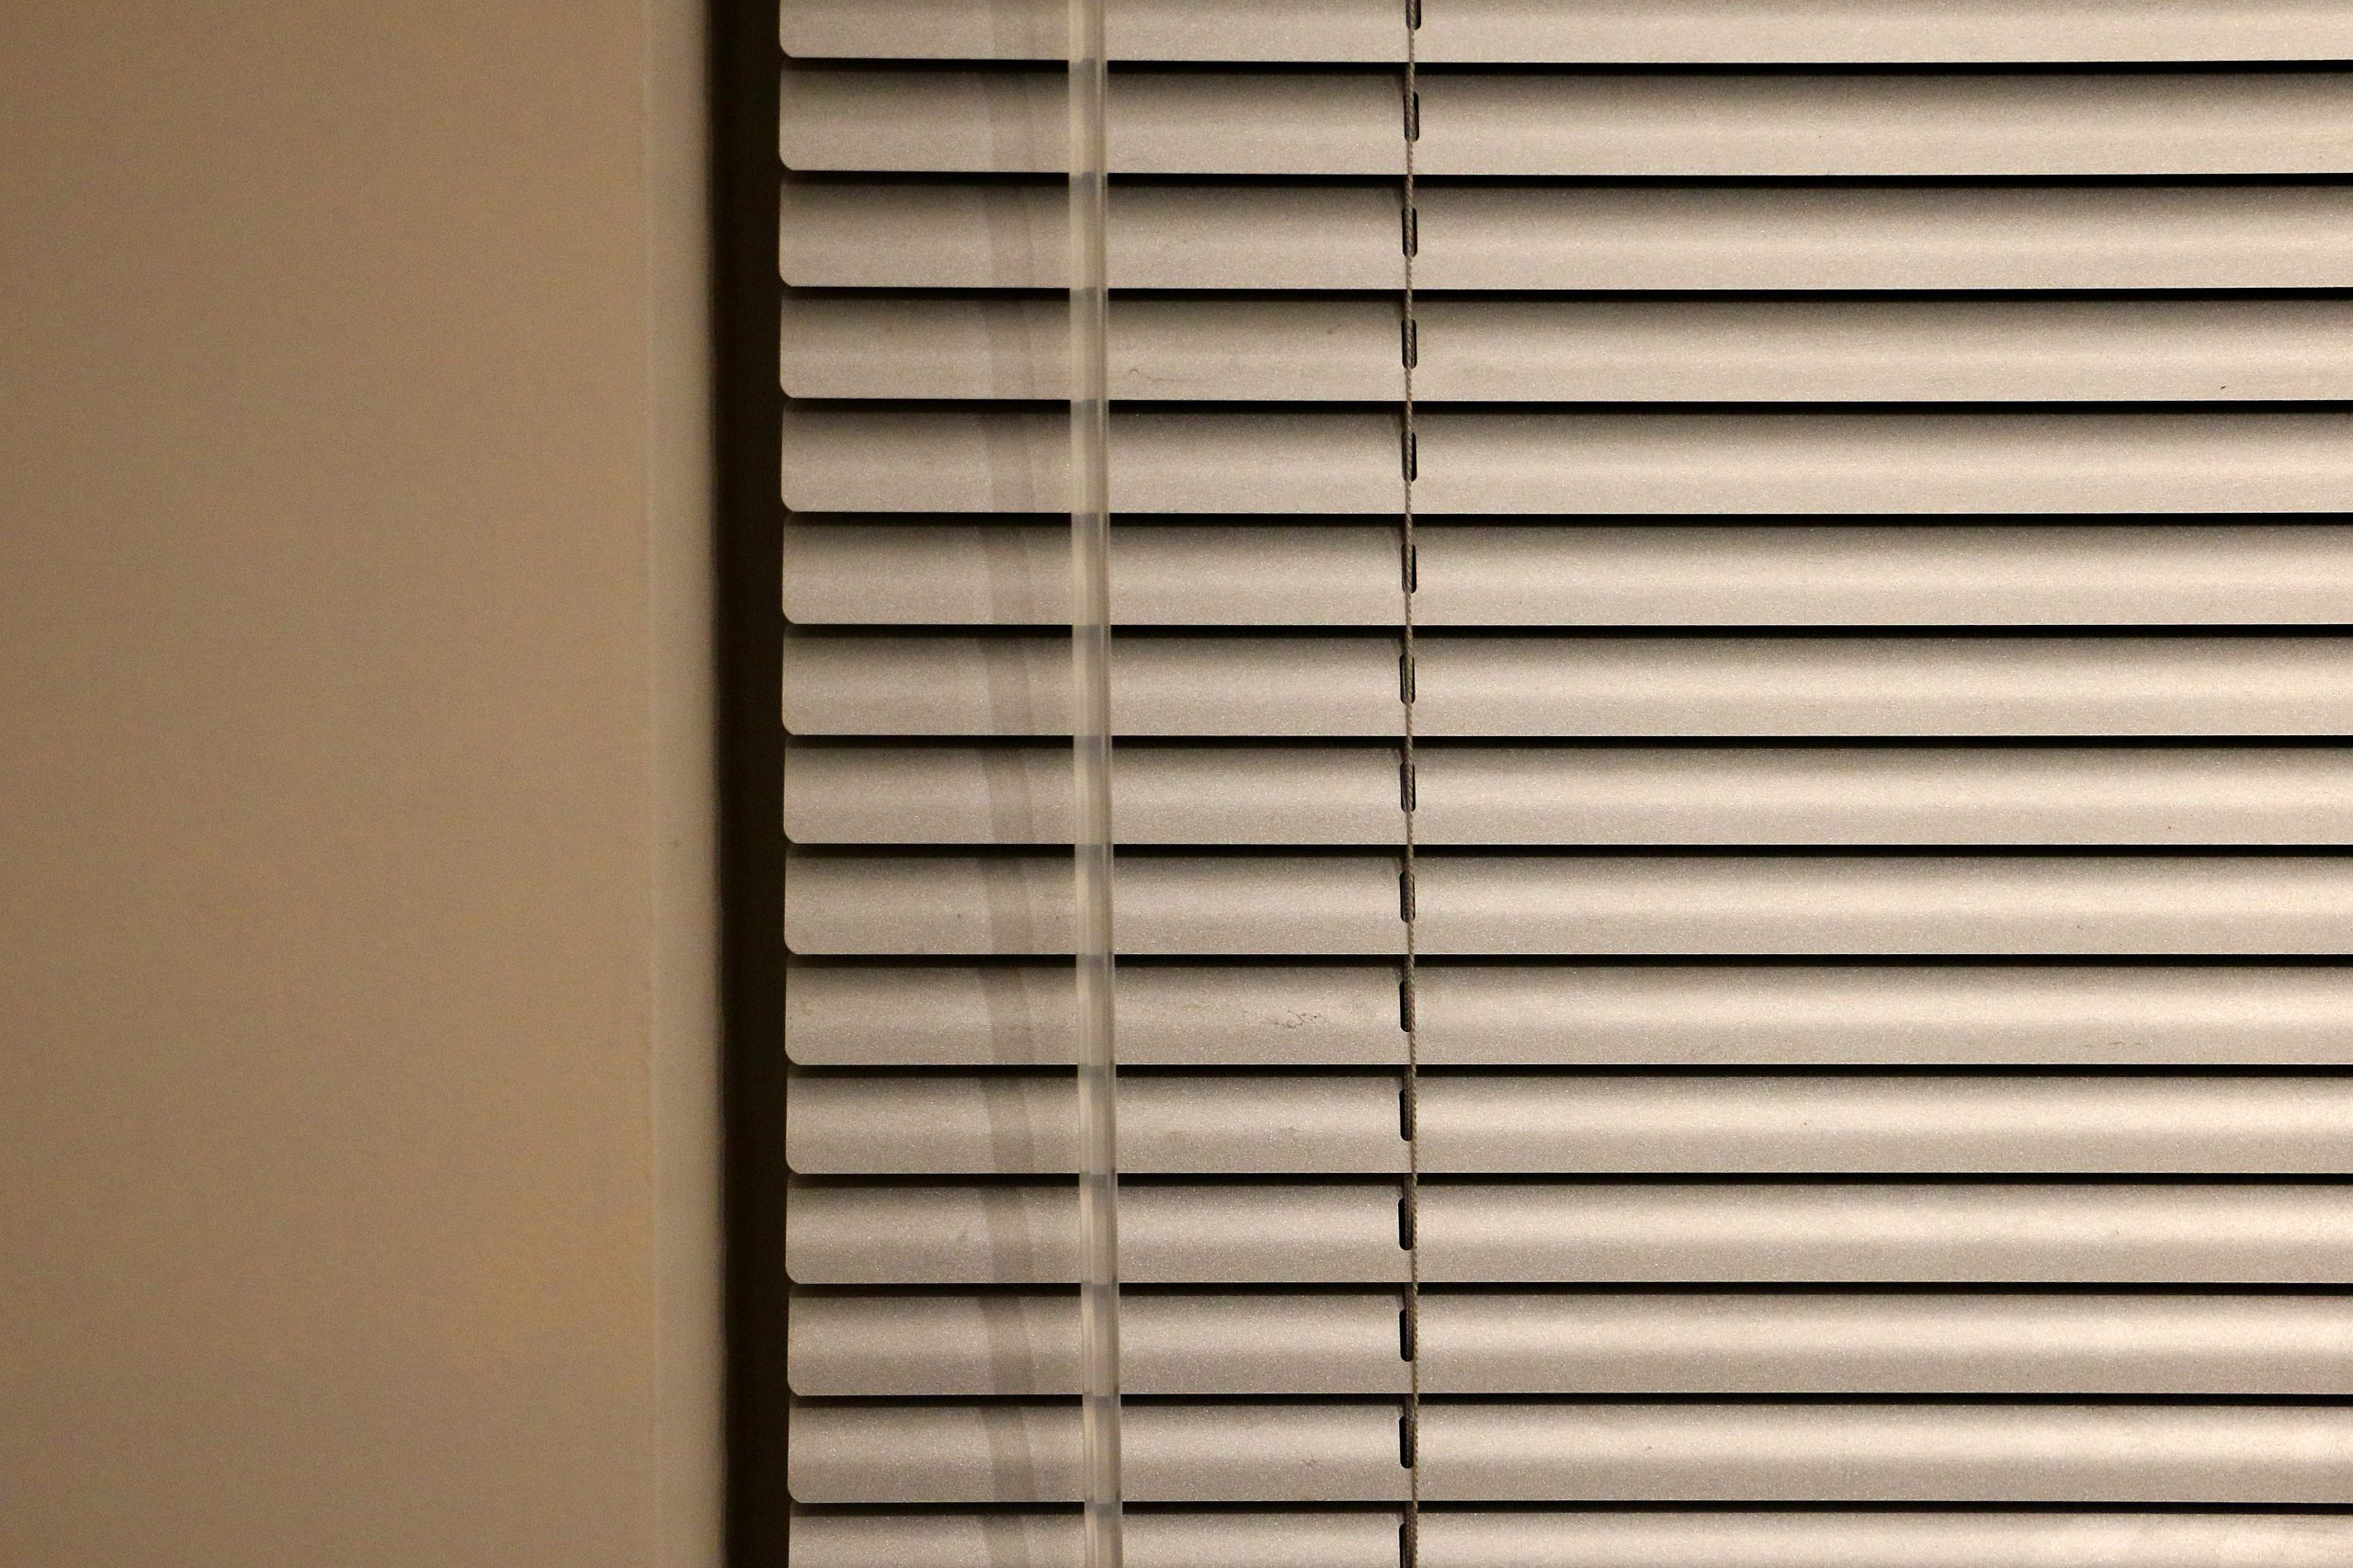 Beige office blinds.